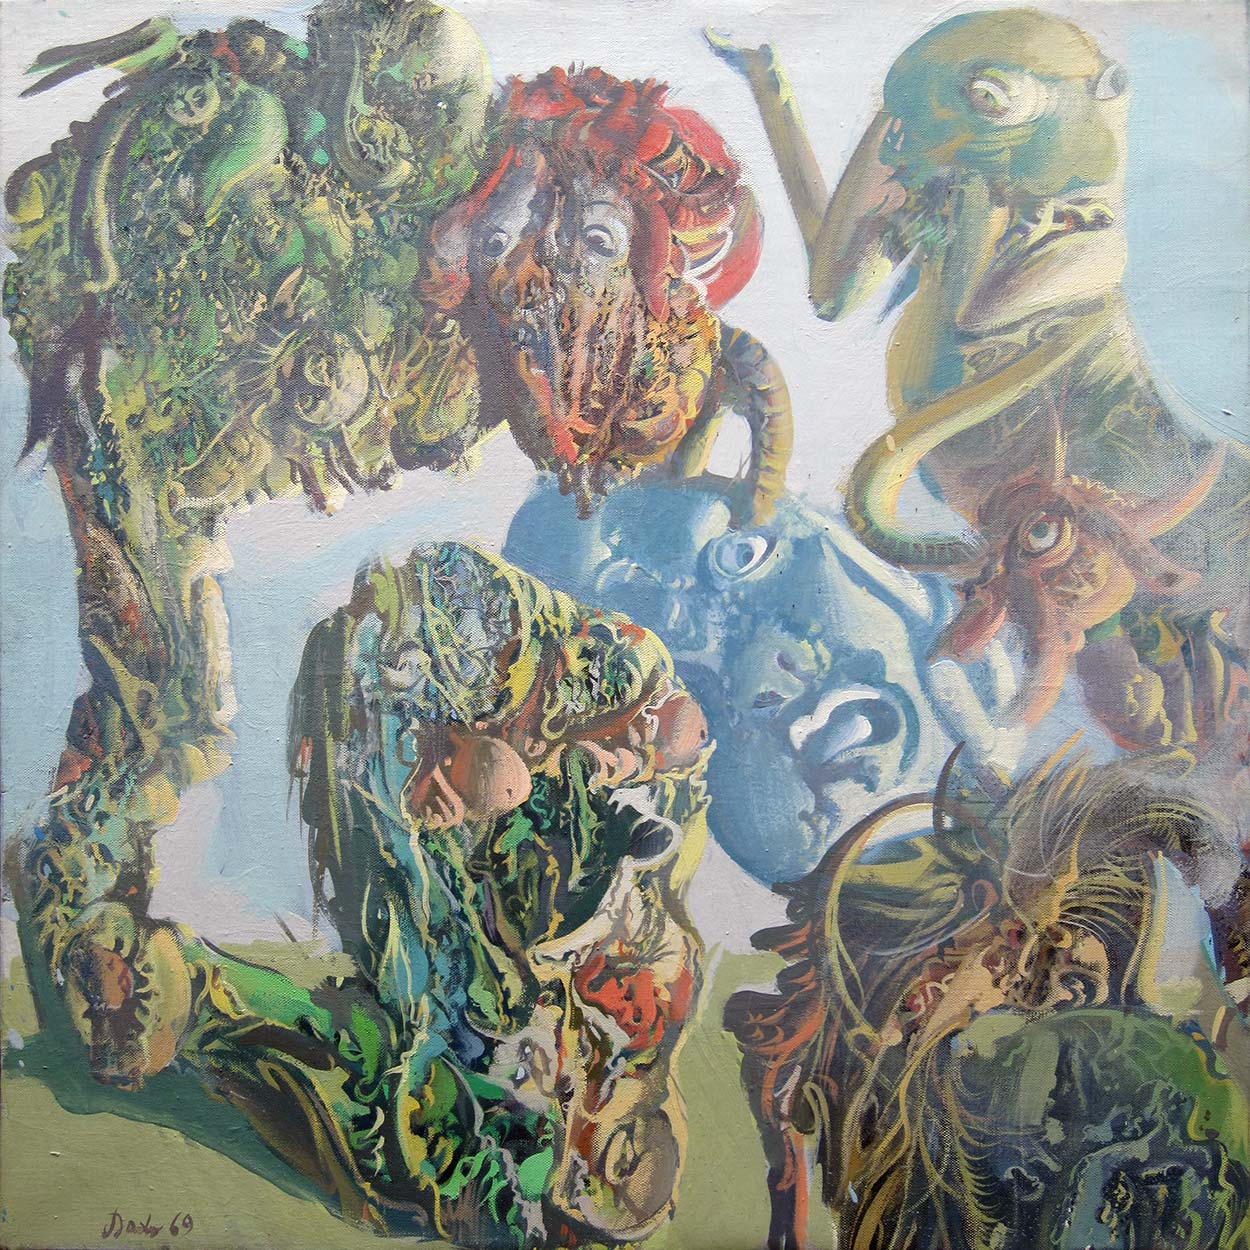 Dado's painting: Untitled, 1969